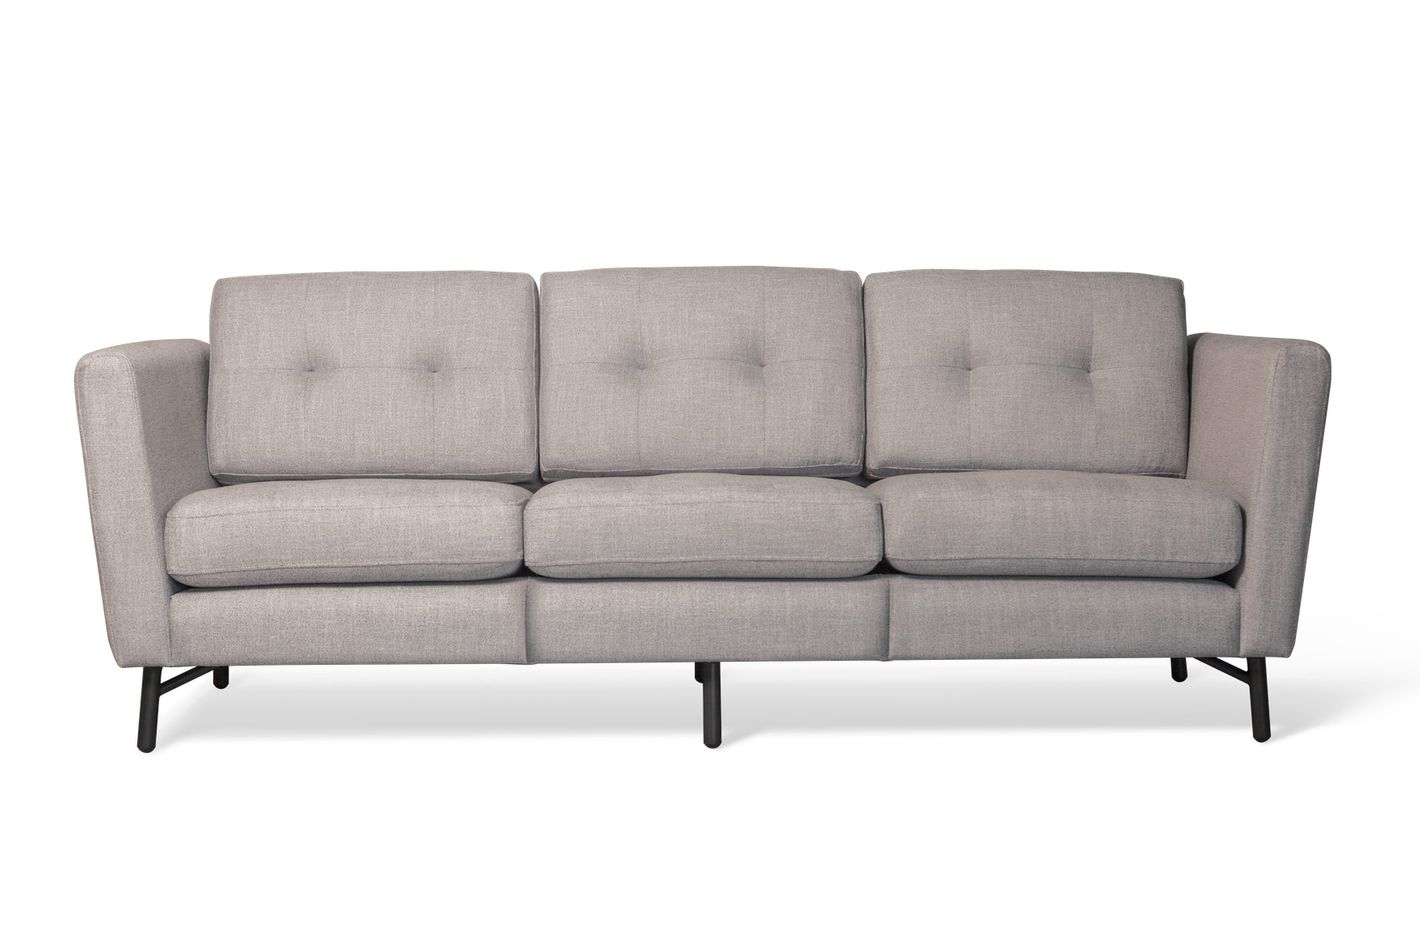 Couch Furniture Design the best sofas under $500 (plus a few under $1000)